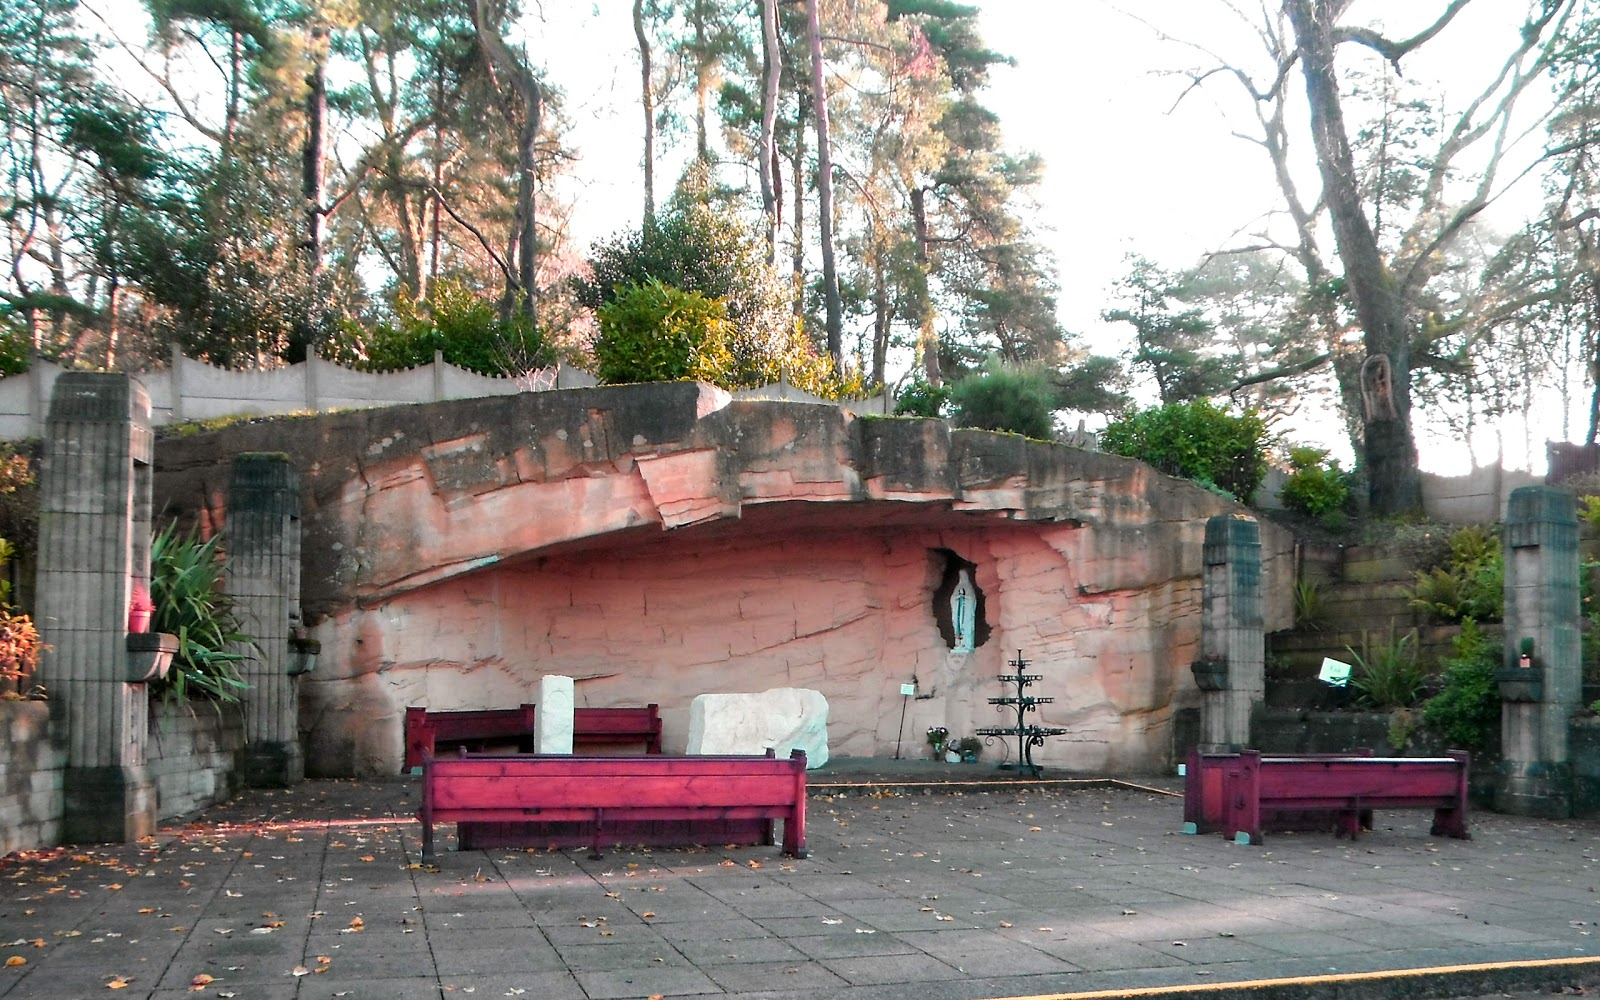 Copy of the Lourdes grotto at Our Lady Of Lourdes Church, Hednesford